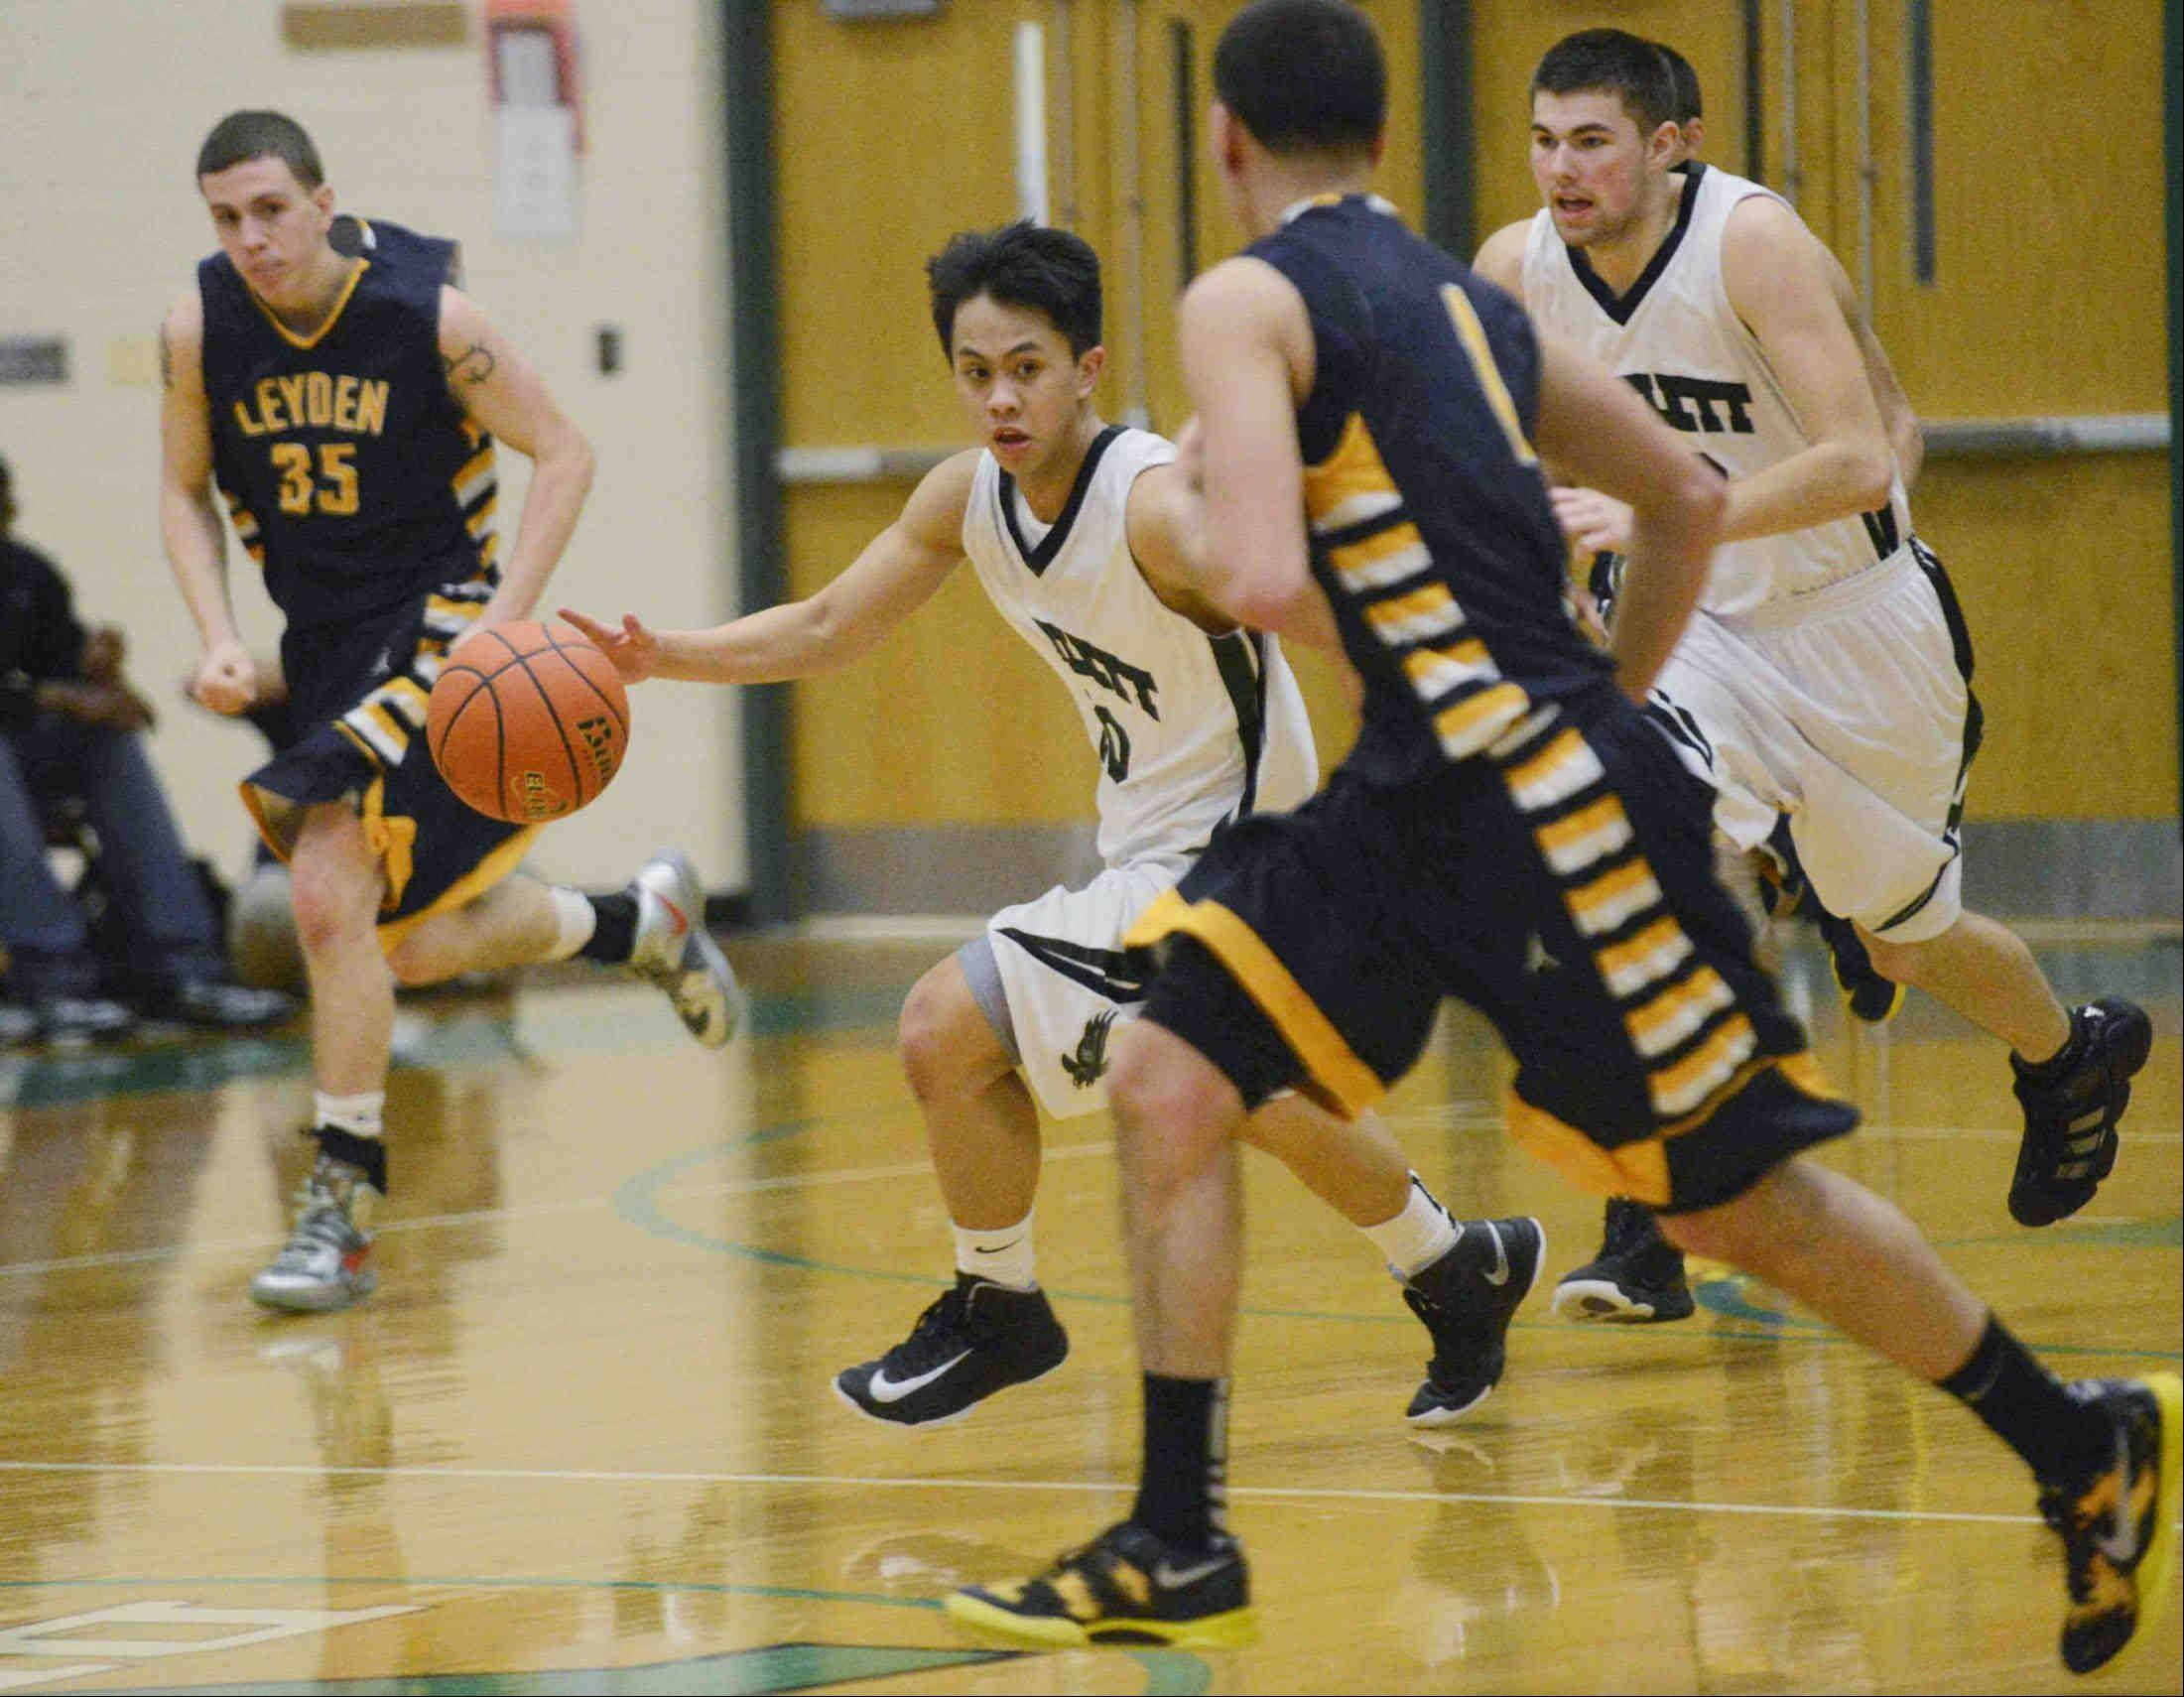 Images from the Bartlett vs. Leyden Class 4A regional boys basketball game Thursday, February 28, 2013 in Elmhurst.